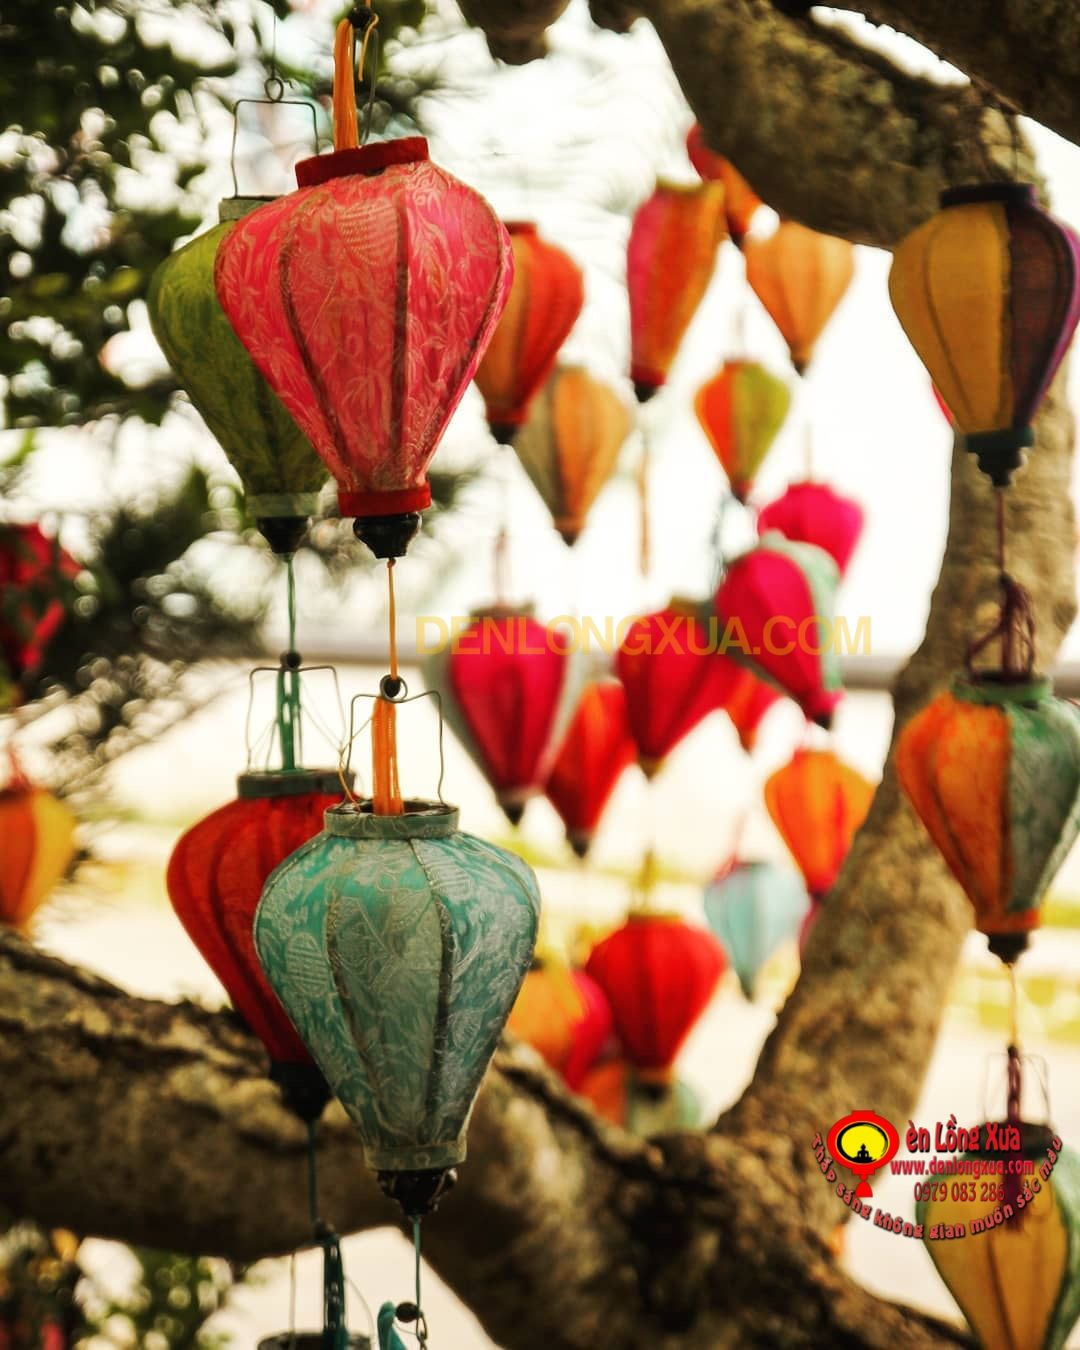 ánh lồng đèn đẹp in 2020 | Holiday decor, Hoi an, Christmas ornaments